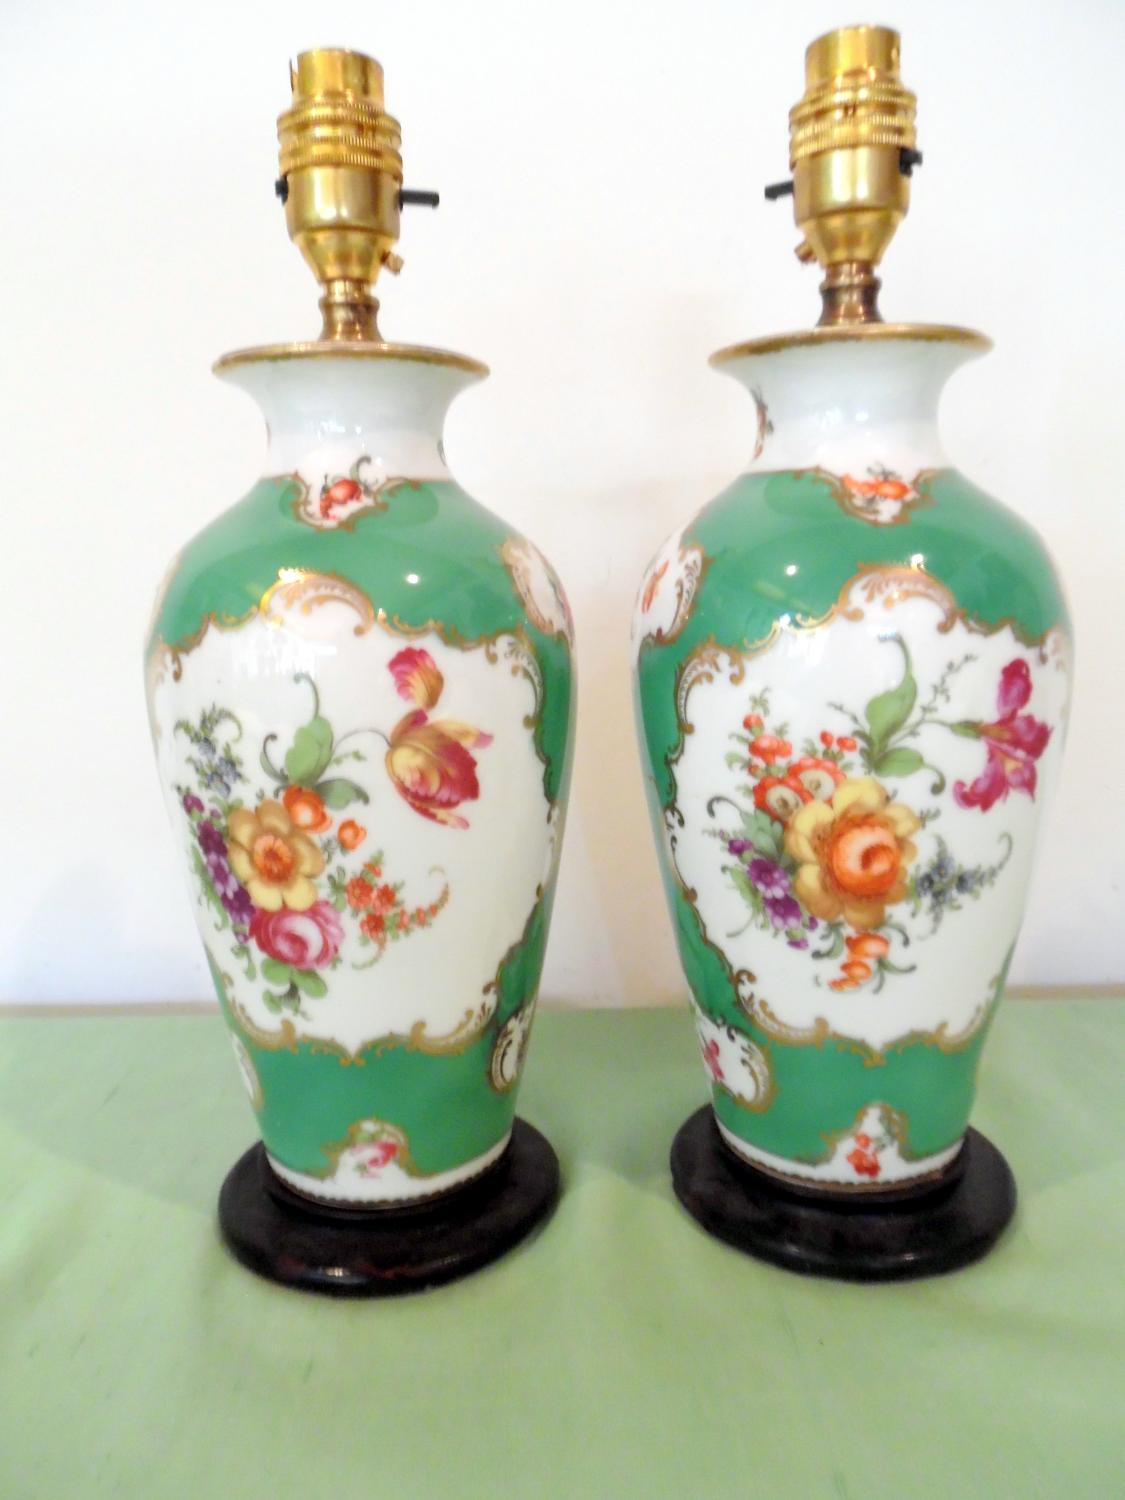 Green floral porcelain lamps